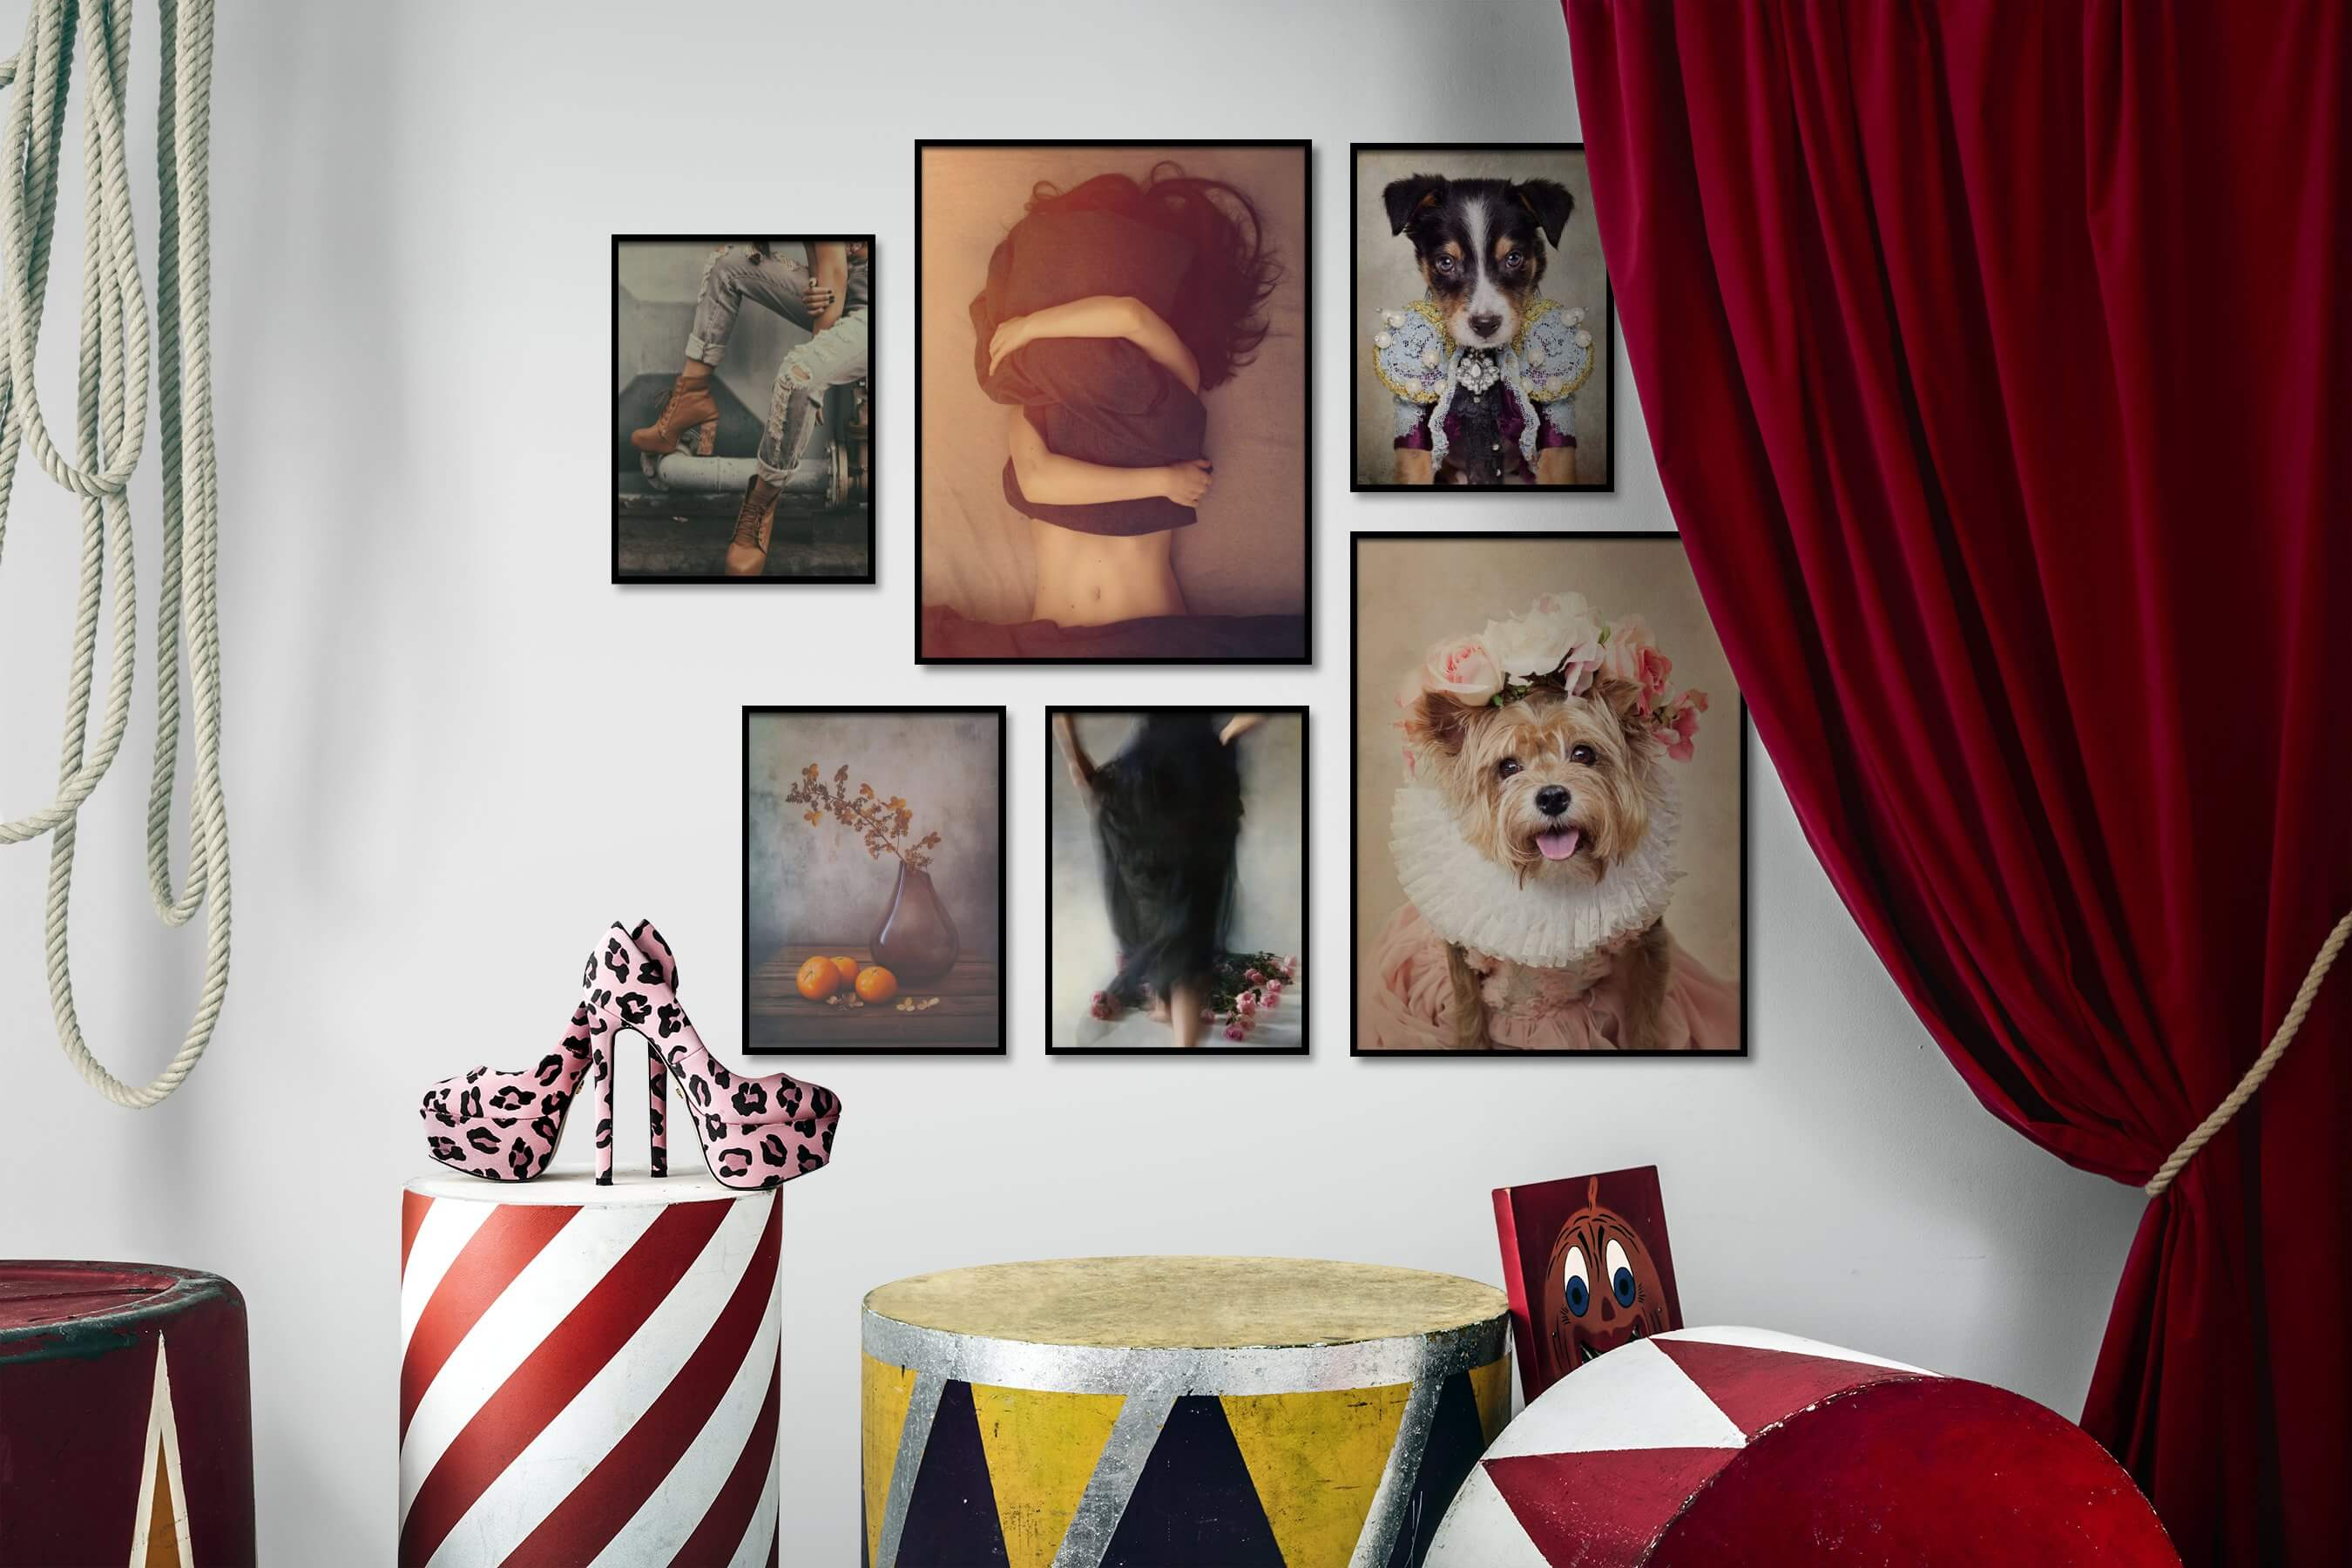 Gallery wall idea with six framed pictures arranged on a wall depicting Fashion & Beauty, Vintage, Flowers & Plants, and Animals